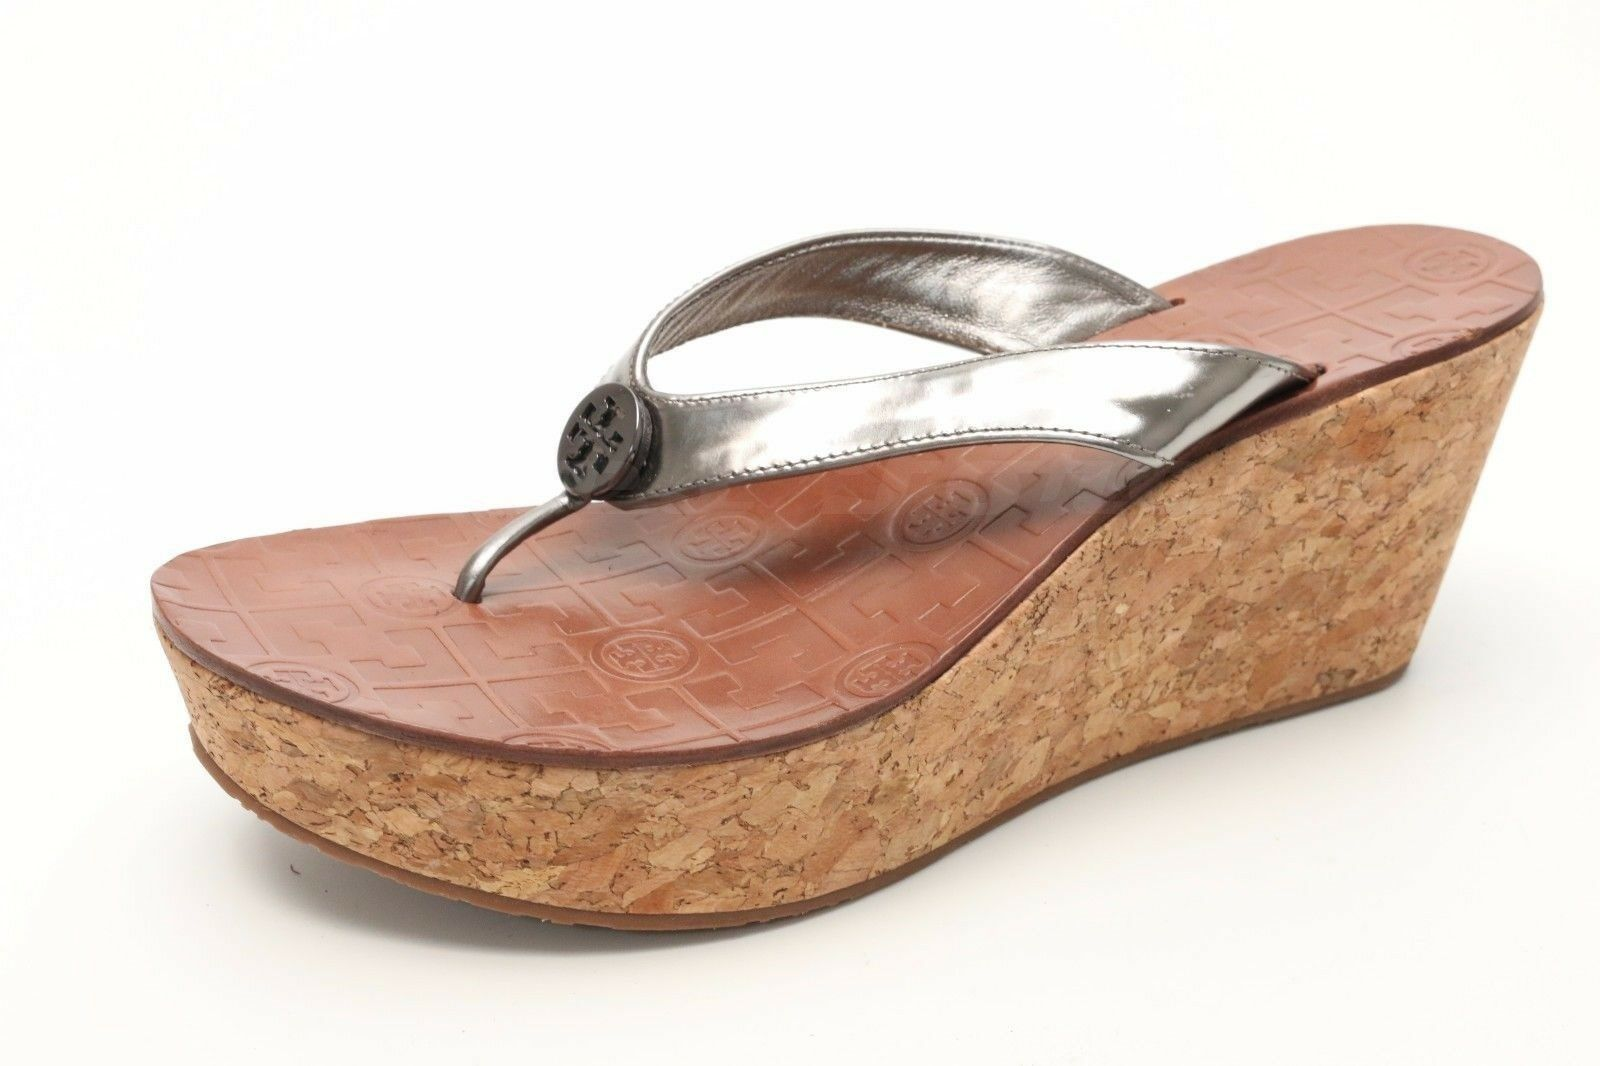 donna TORY BURCH metallic patent leather leather leather wedge thong sandals sz. 9.5 NEW  62c270